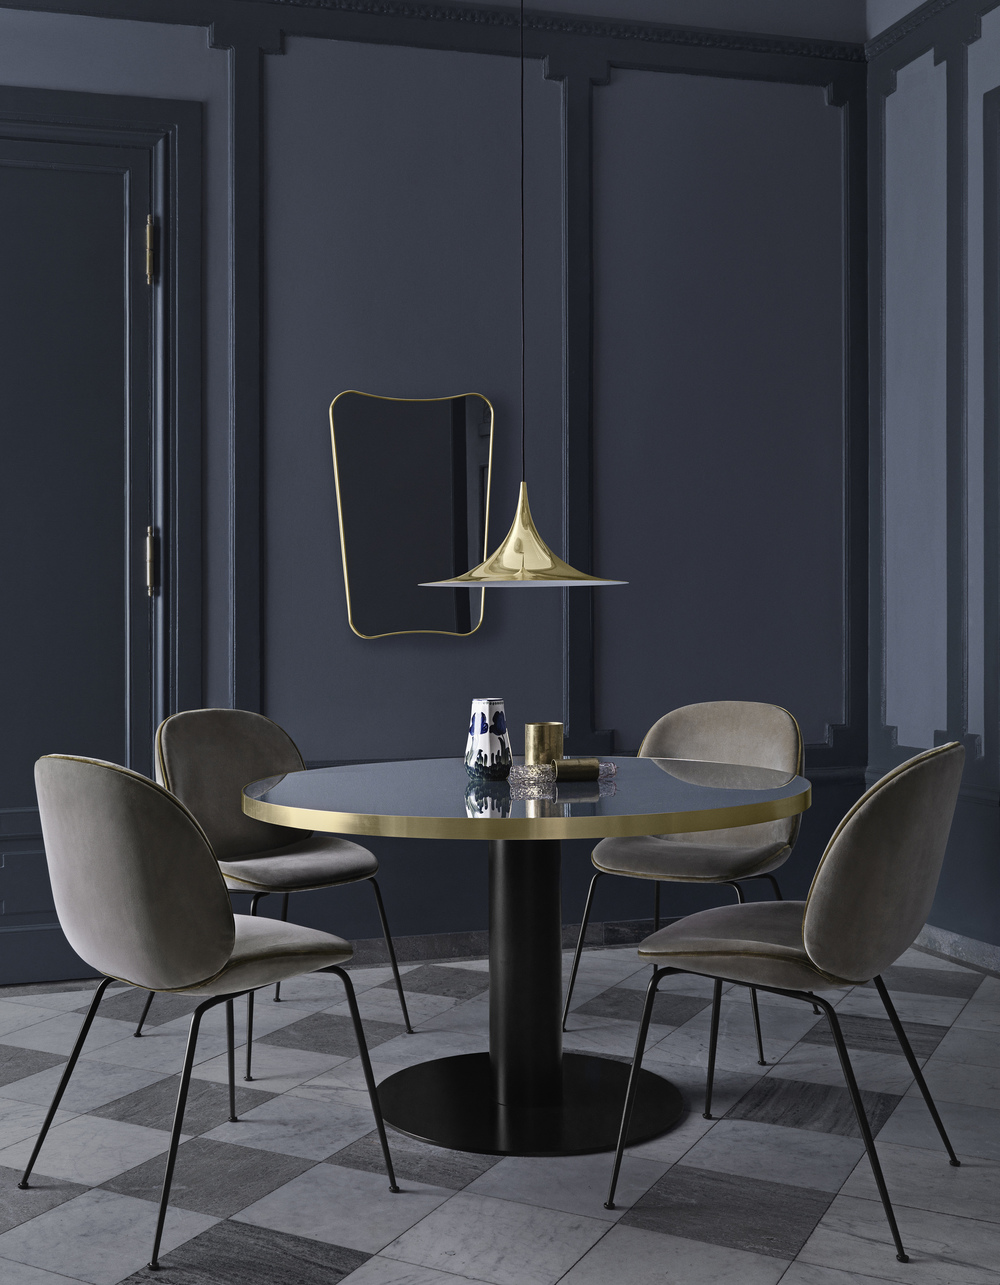 Beetle chair - Velluto di Cotone 294, piping 1180_Gubi table 2.0 - granite grey_Semi pendant Ø47- brass_F.A. 33 mirror.jpg